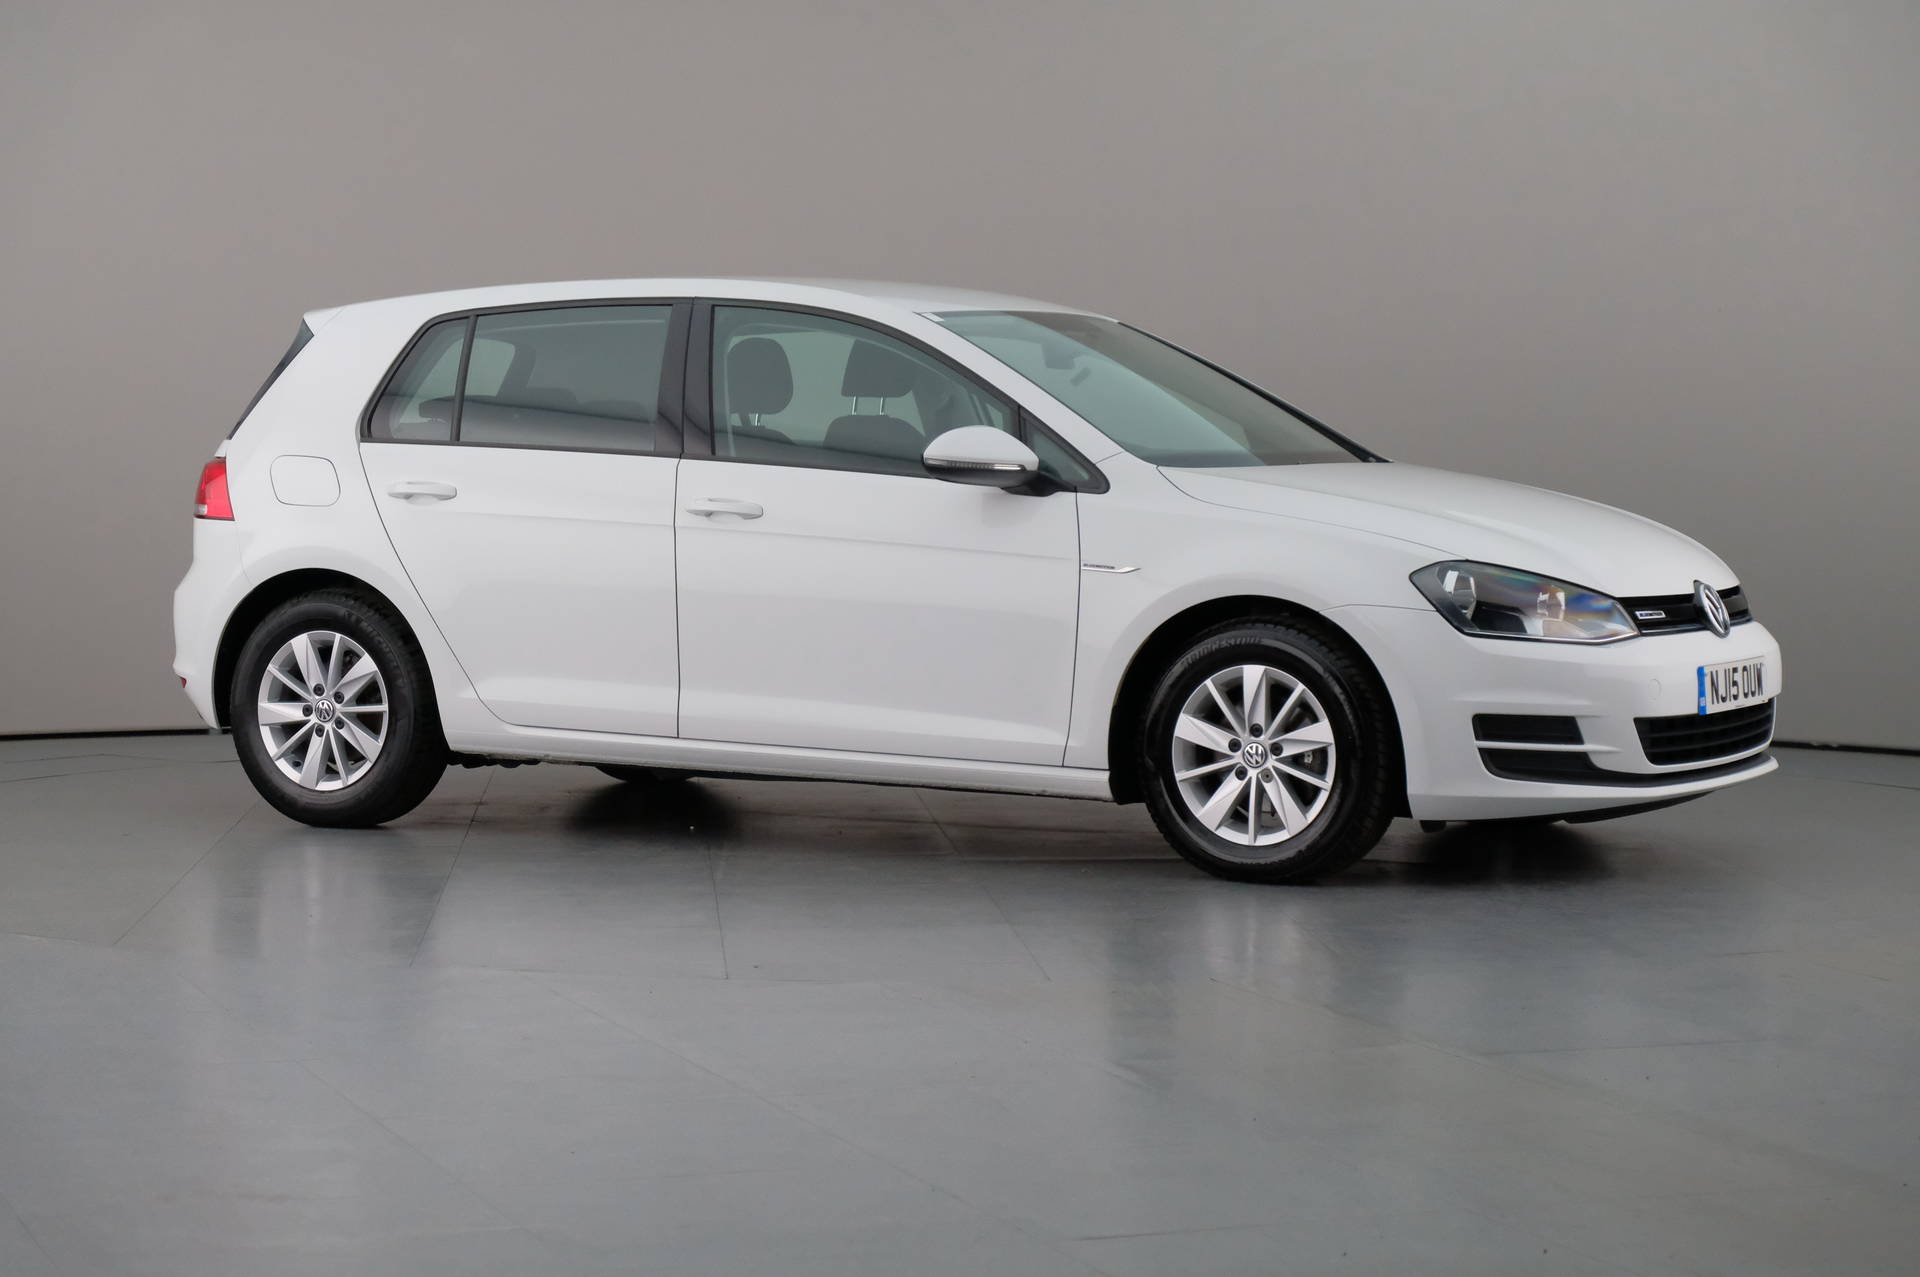 Volkswagen Golf 1.6TDi BLUEMOTION 5DR, 360-image34